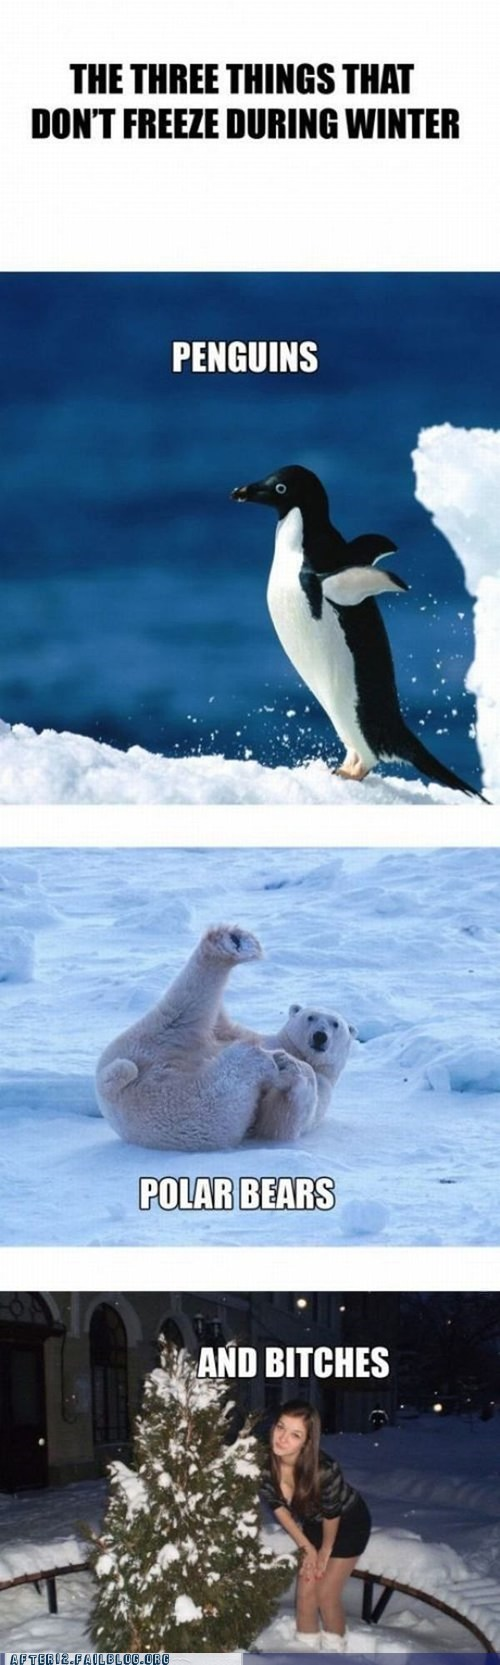 freeze ice penguins polar bear snow winter woo girls